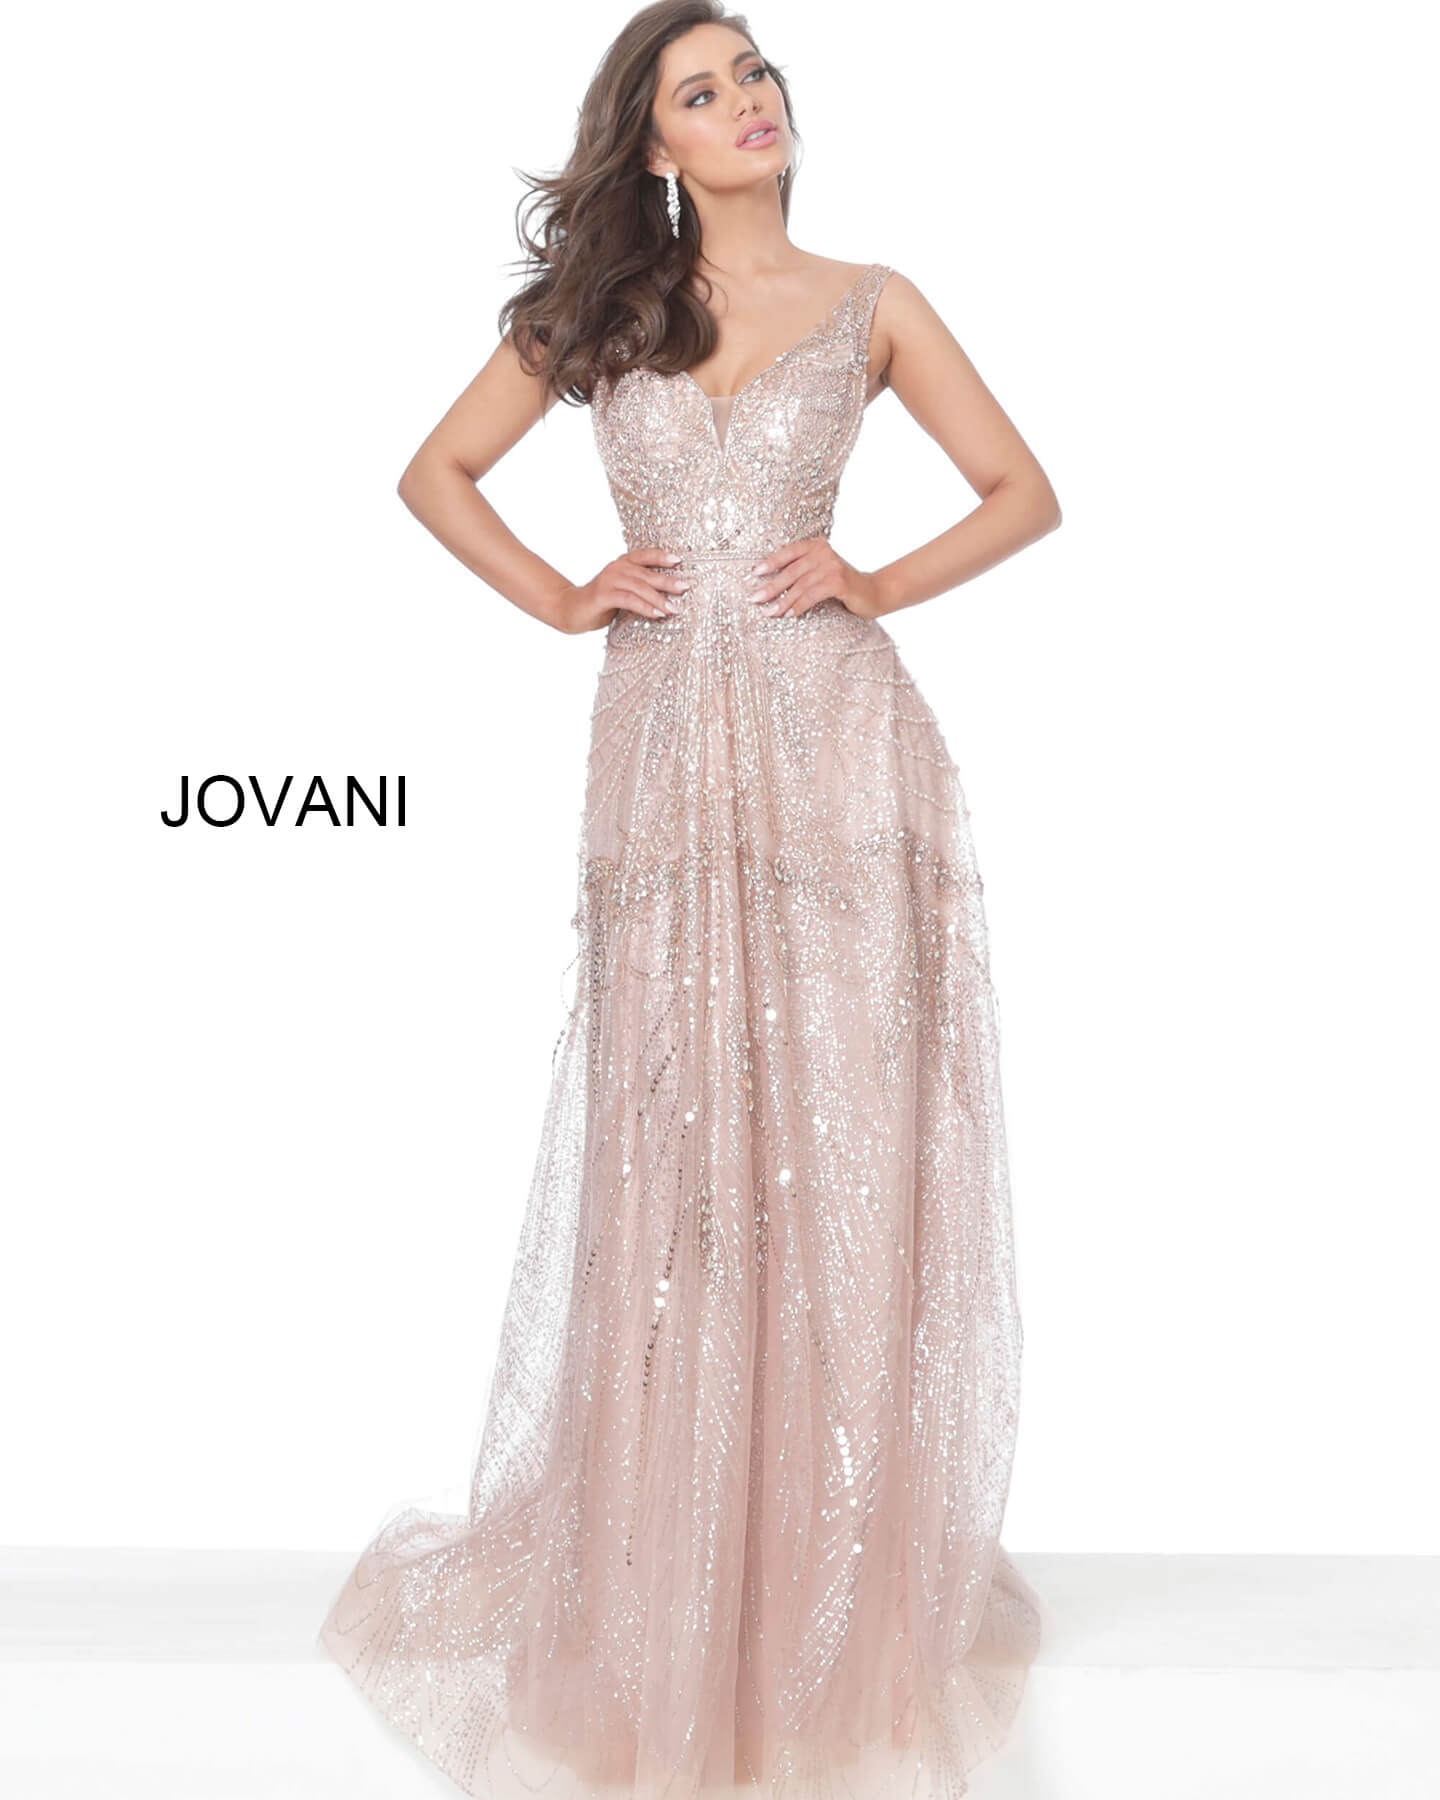 jovani Jovani 03203 Rose Gold Embellished V Neck Evening Dress on mobile 1